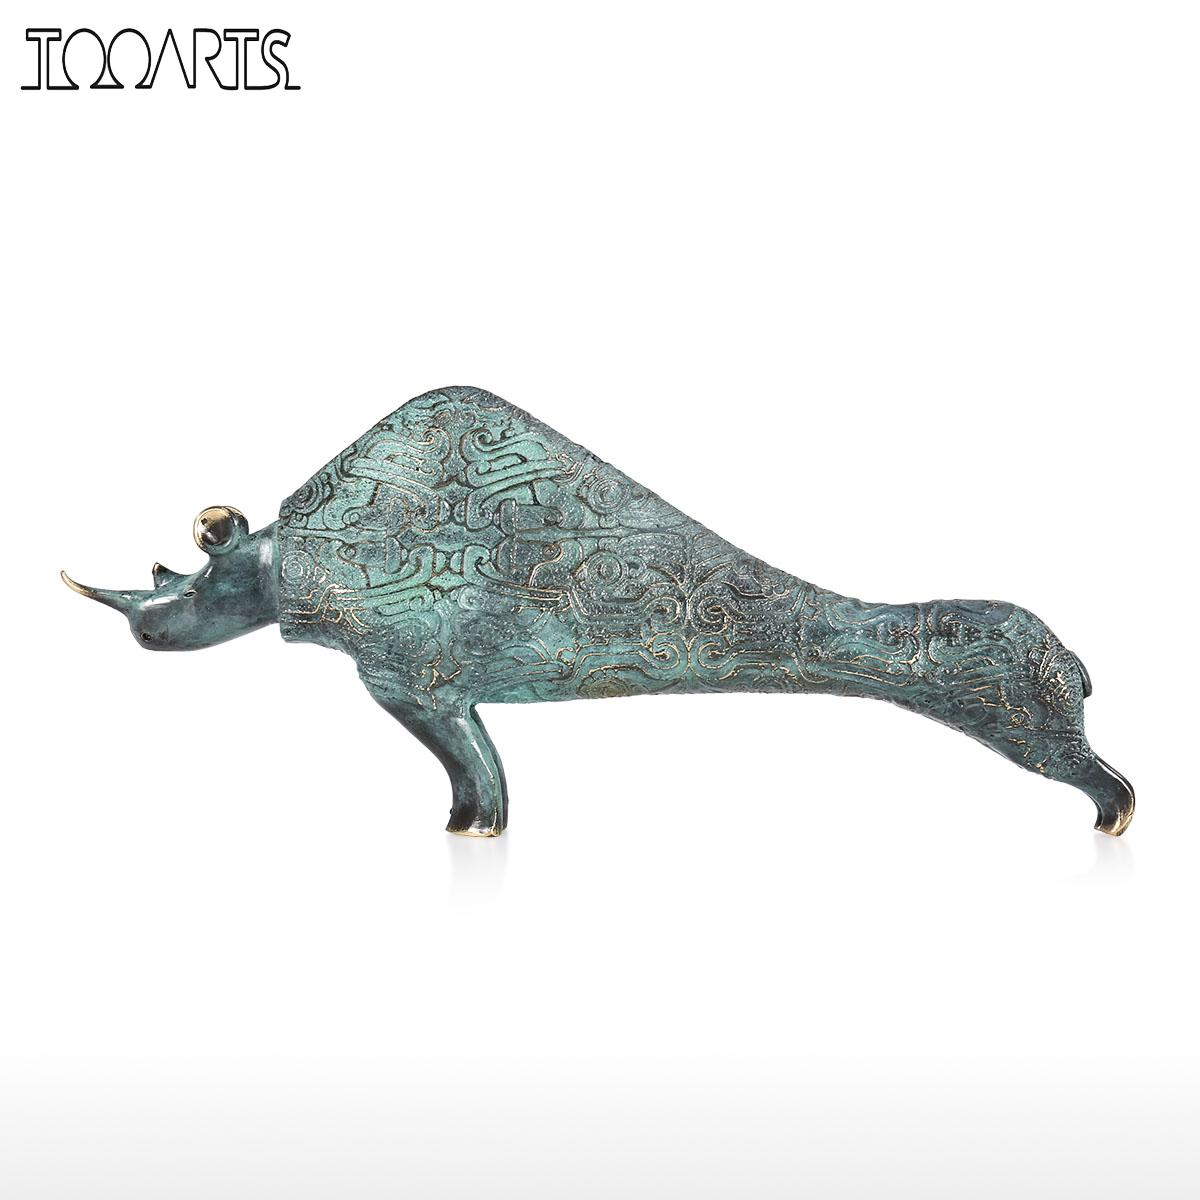 Tooarts statue modern Rhinoceros Sculpture Handmade Bronze Statues Decorative Tabletop Rhinoceros Ideal Gift for Home Decoration